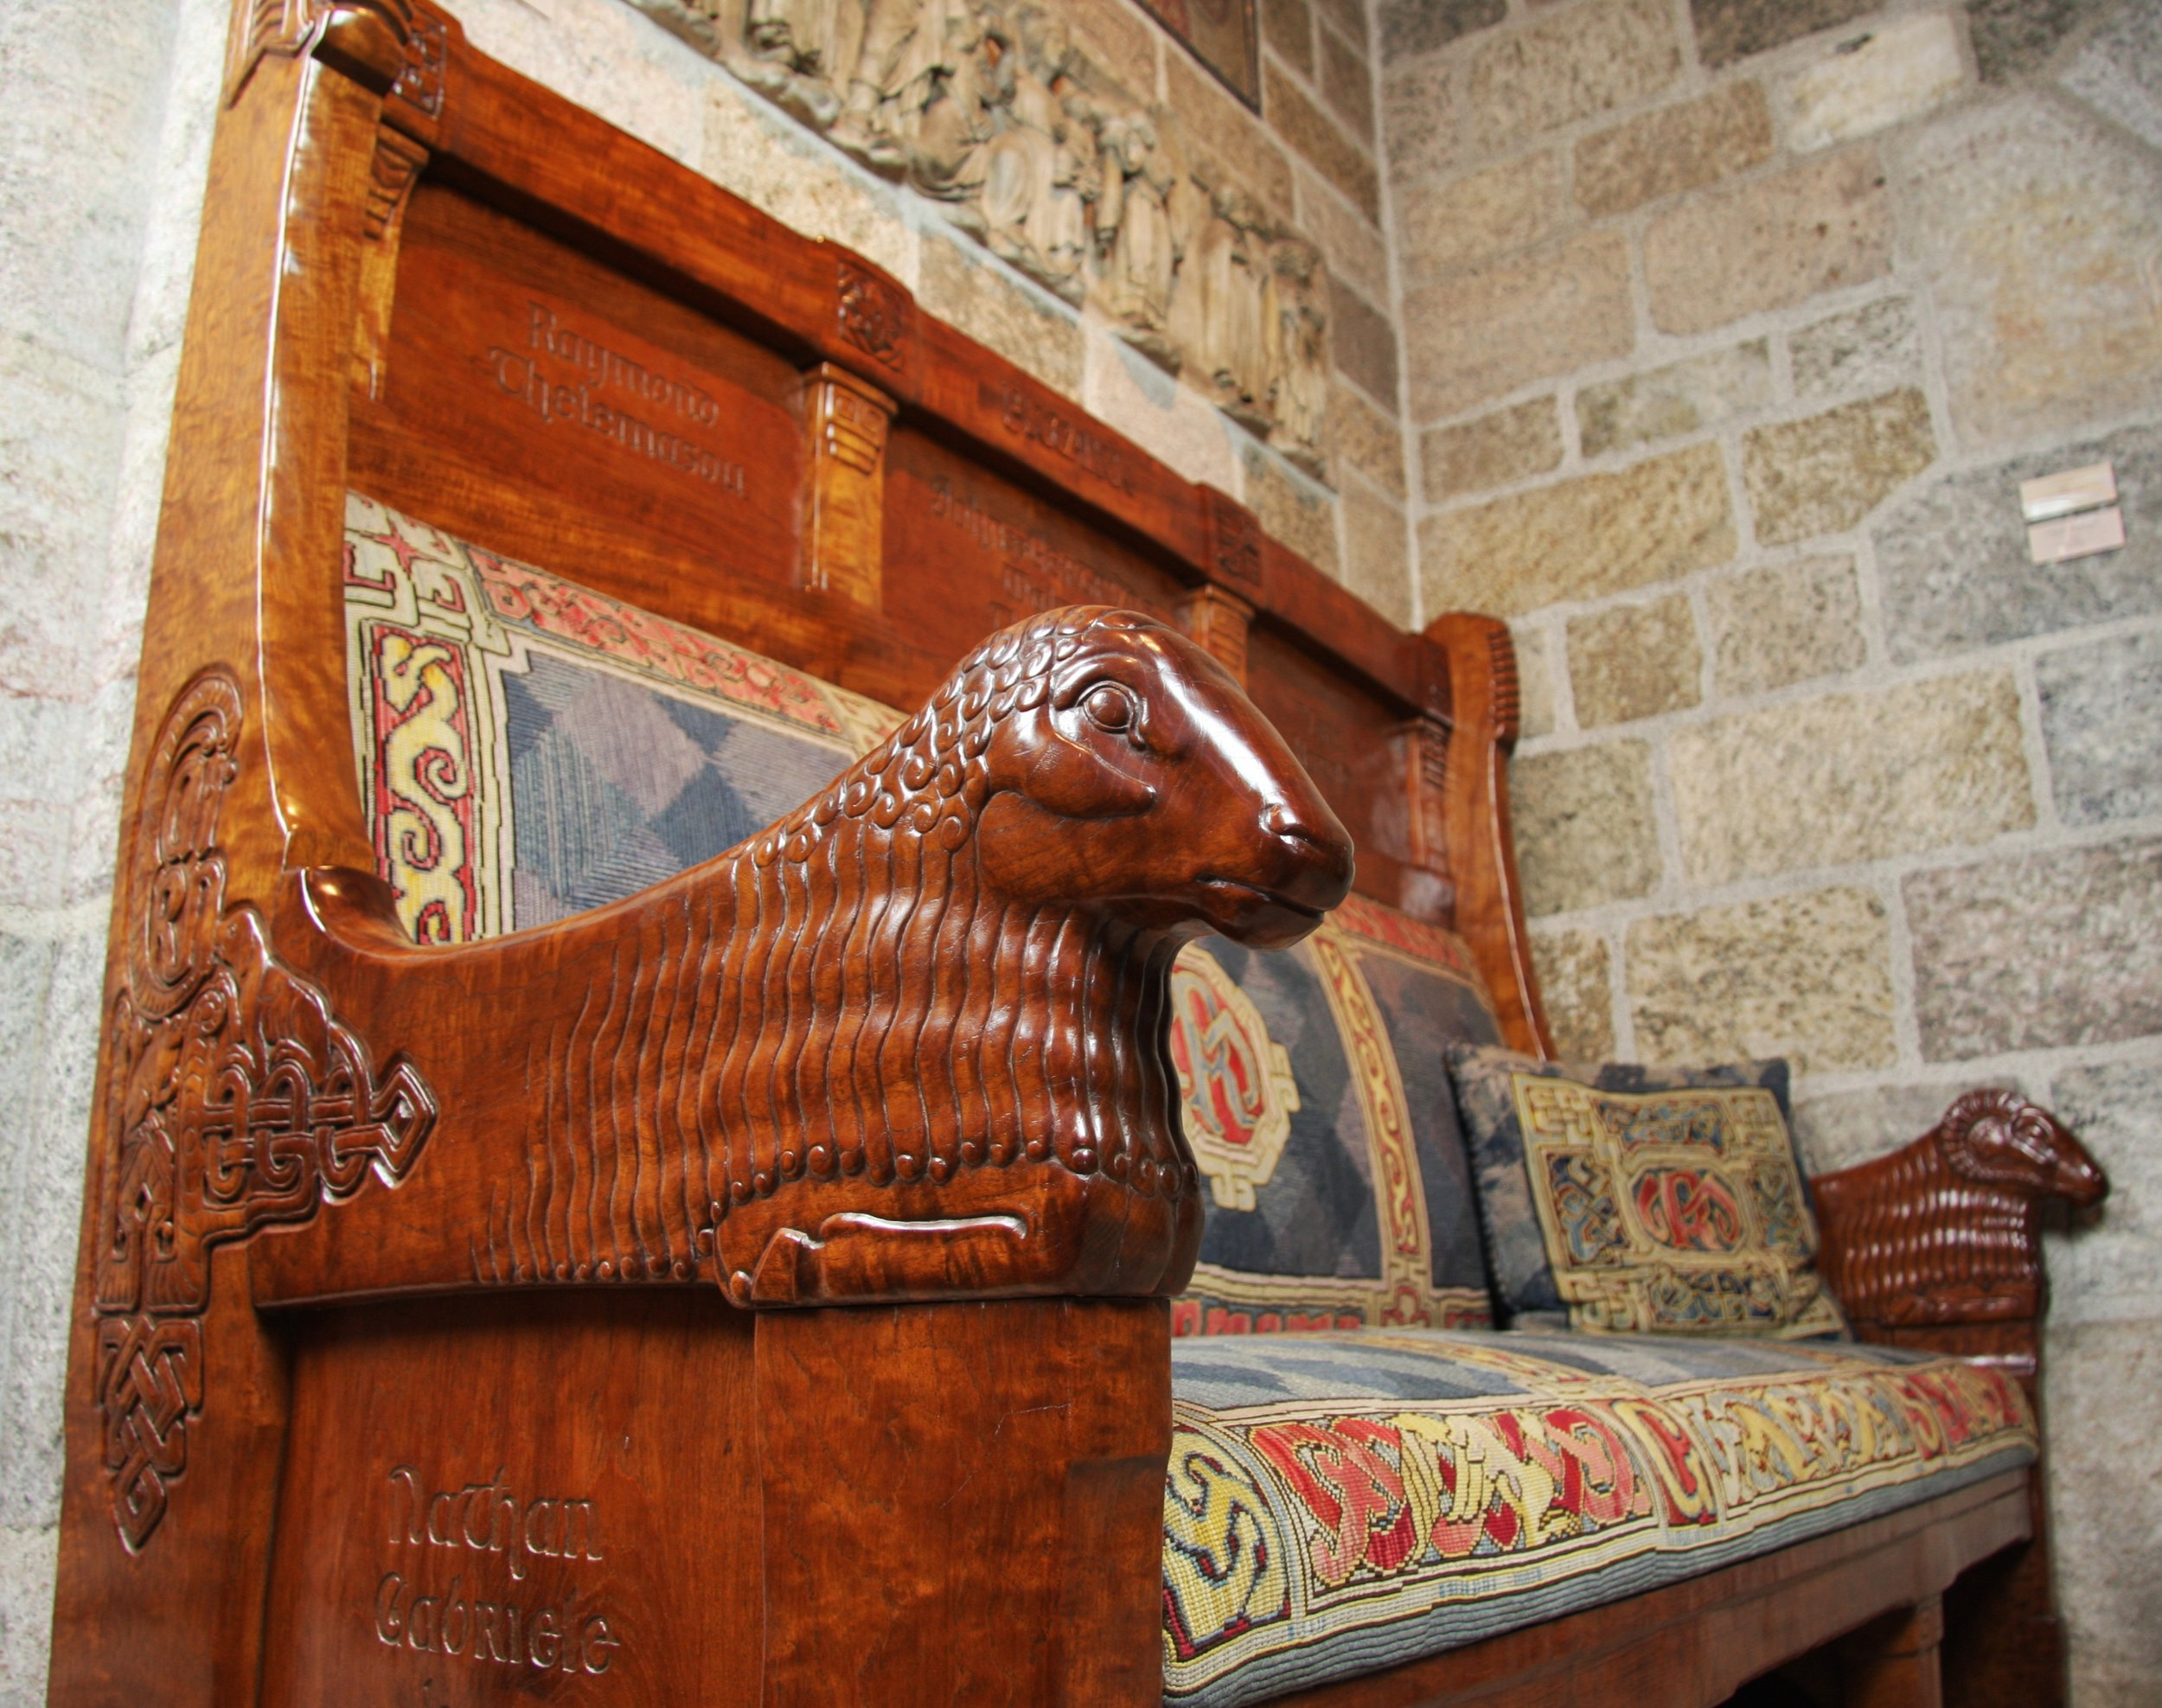 Figure 13: The Great Hall features a large fireplace flanked on either side by carved teakwood benches. The armrests of both benches are in the shape of a ram and a ewe. The bench on the right side is carved with the names of Mildred's parents and siblings. The bench on the left side (pictured) is carved with the names of Raymond's  parents and siblings . The ends of the benches are carved with the names of Mildred and Raymond's children.